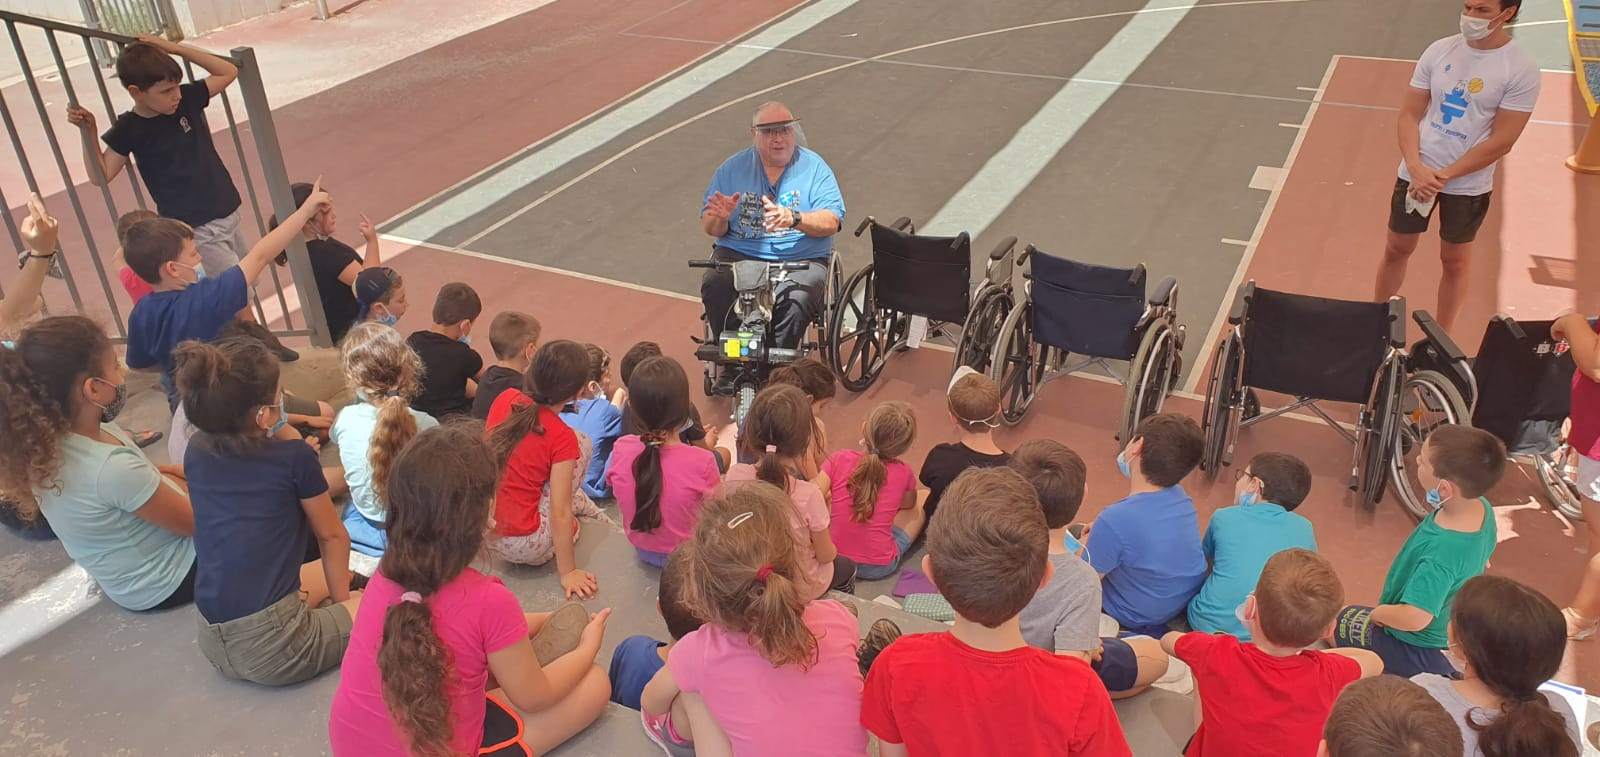 the students met instructors with physical disabilities